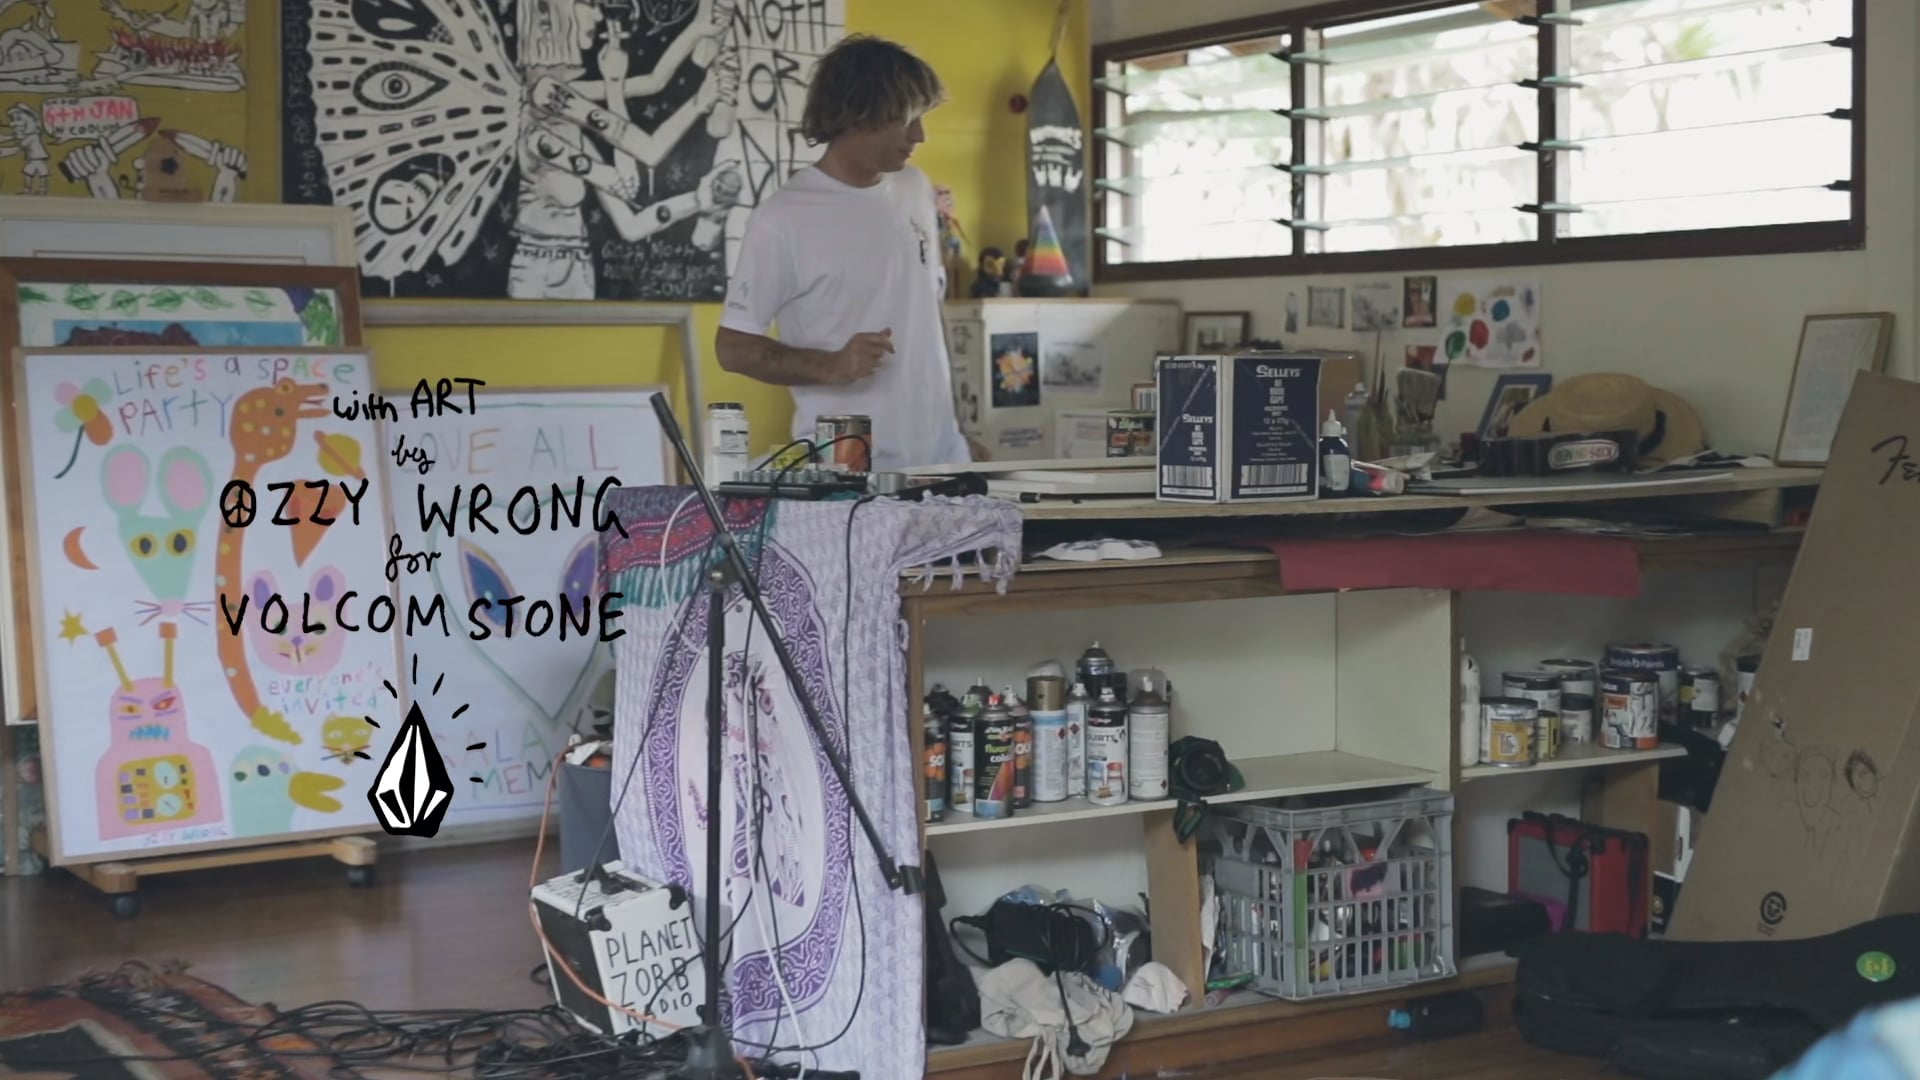 VOLCOM STONE - Shreditation with Art By Ozzy Wrong